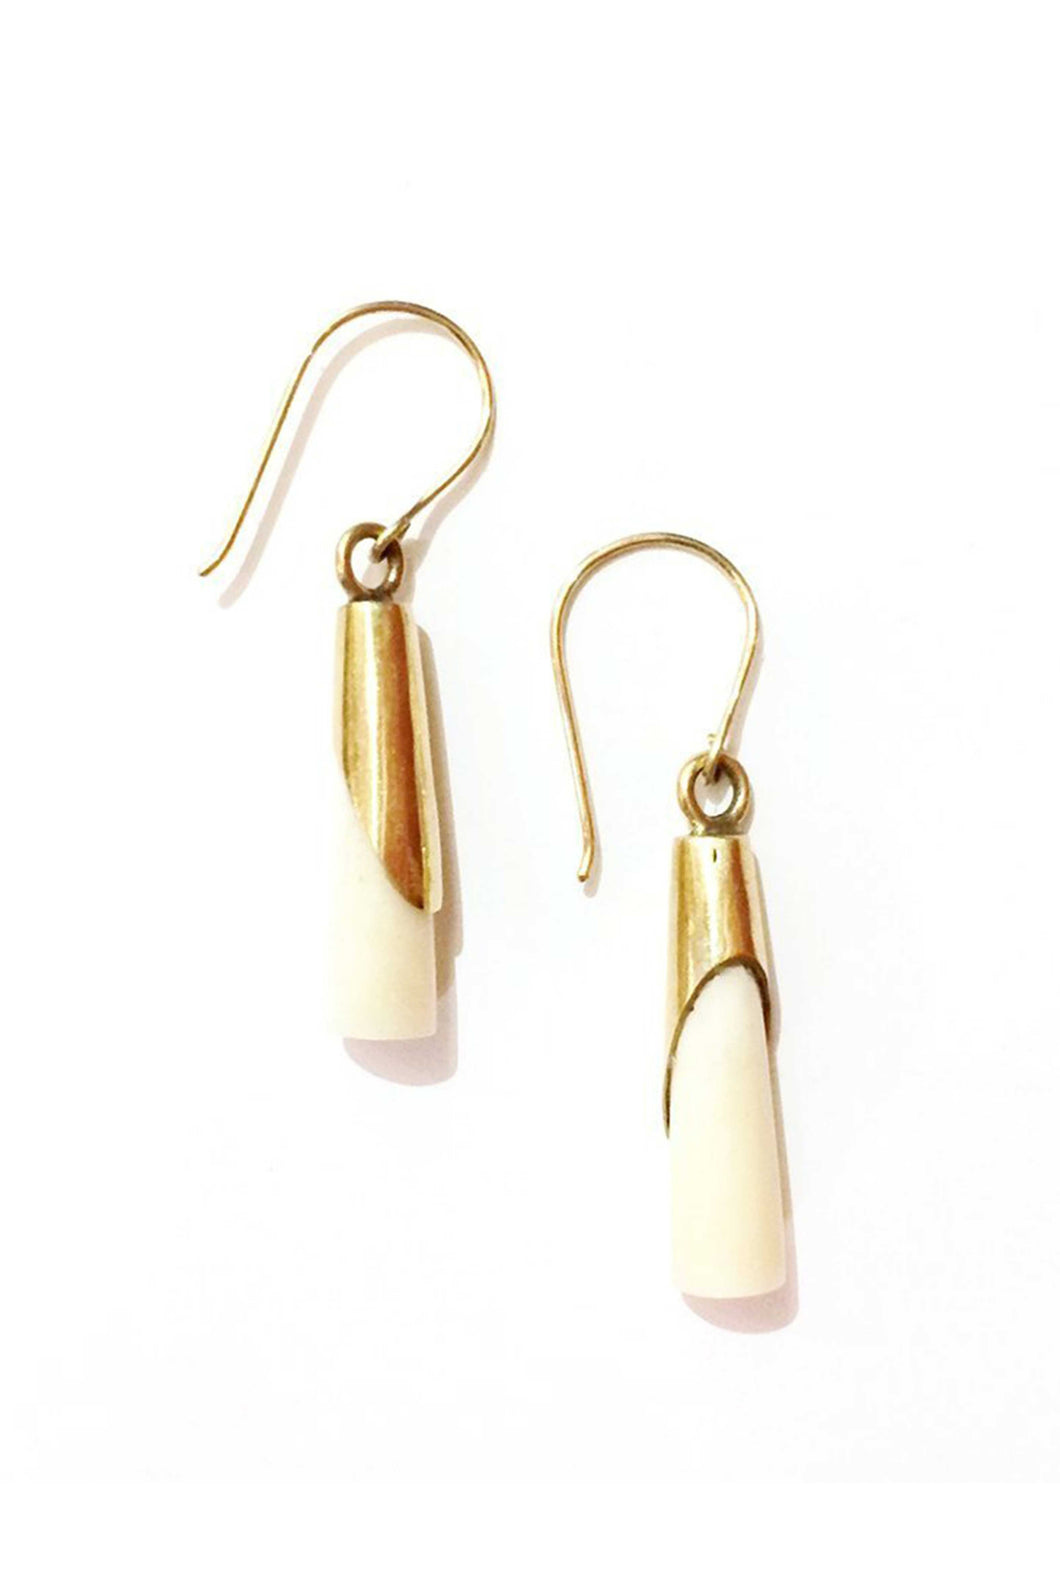 Jino Bone Earrings